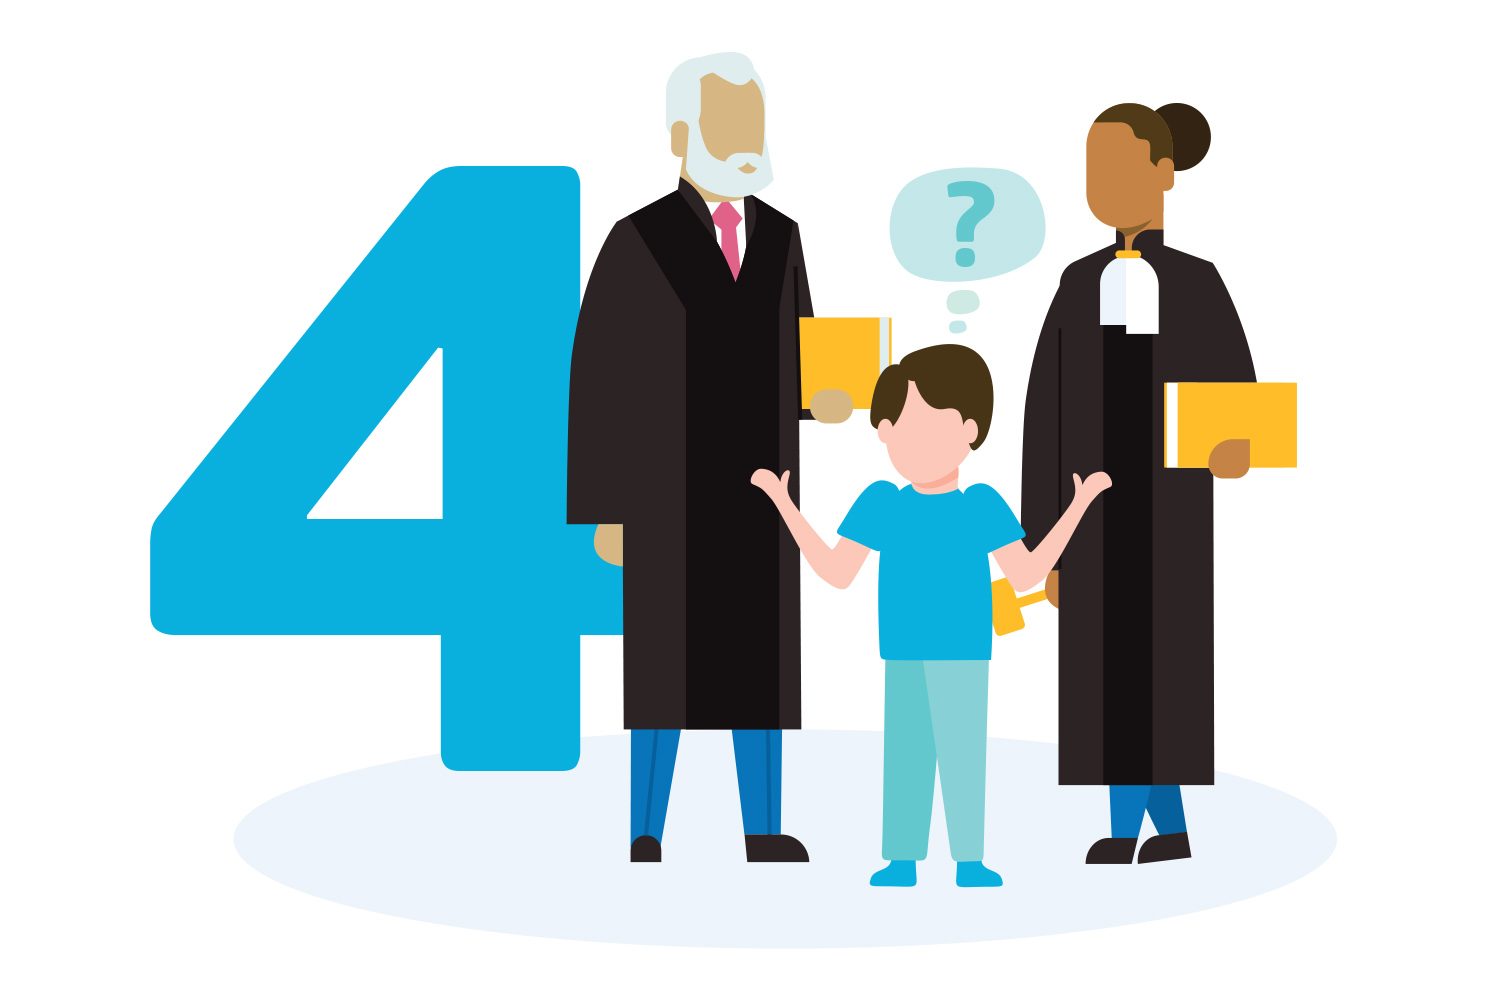 Child-friendly justice: An EU where the justice system upholds the rights and needs of children